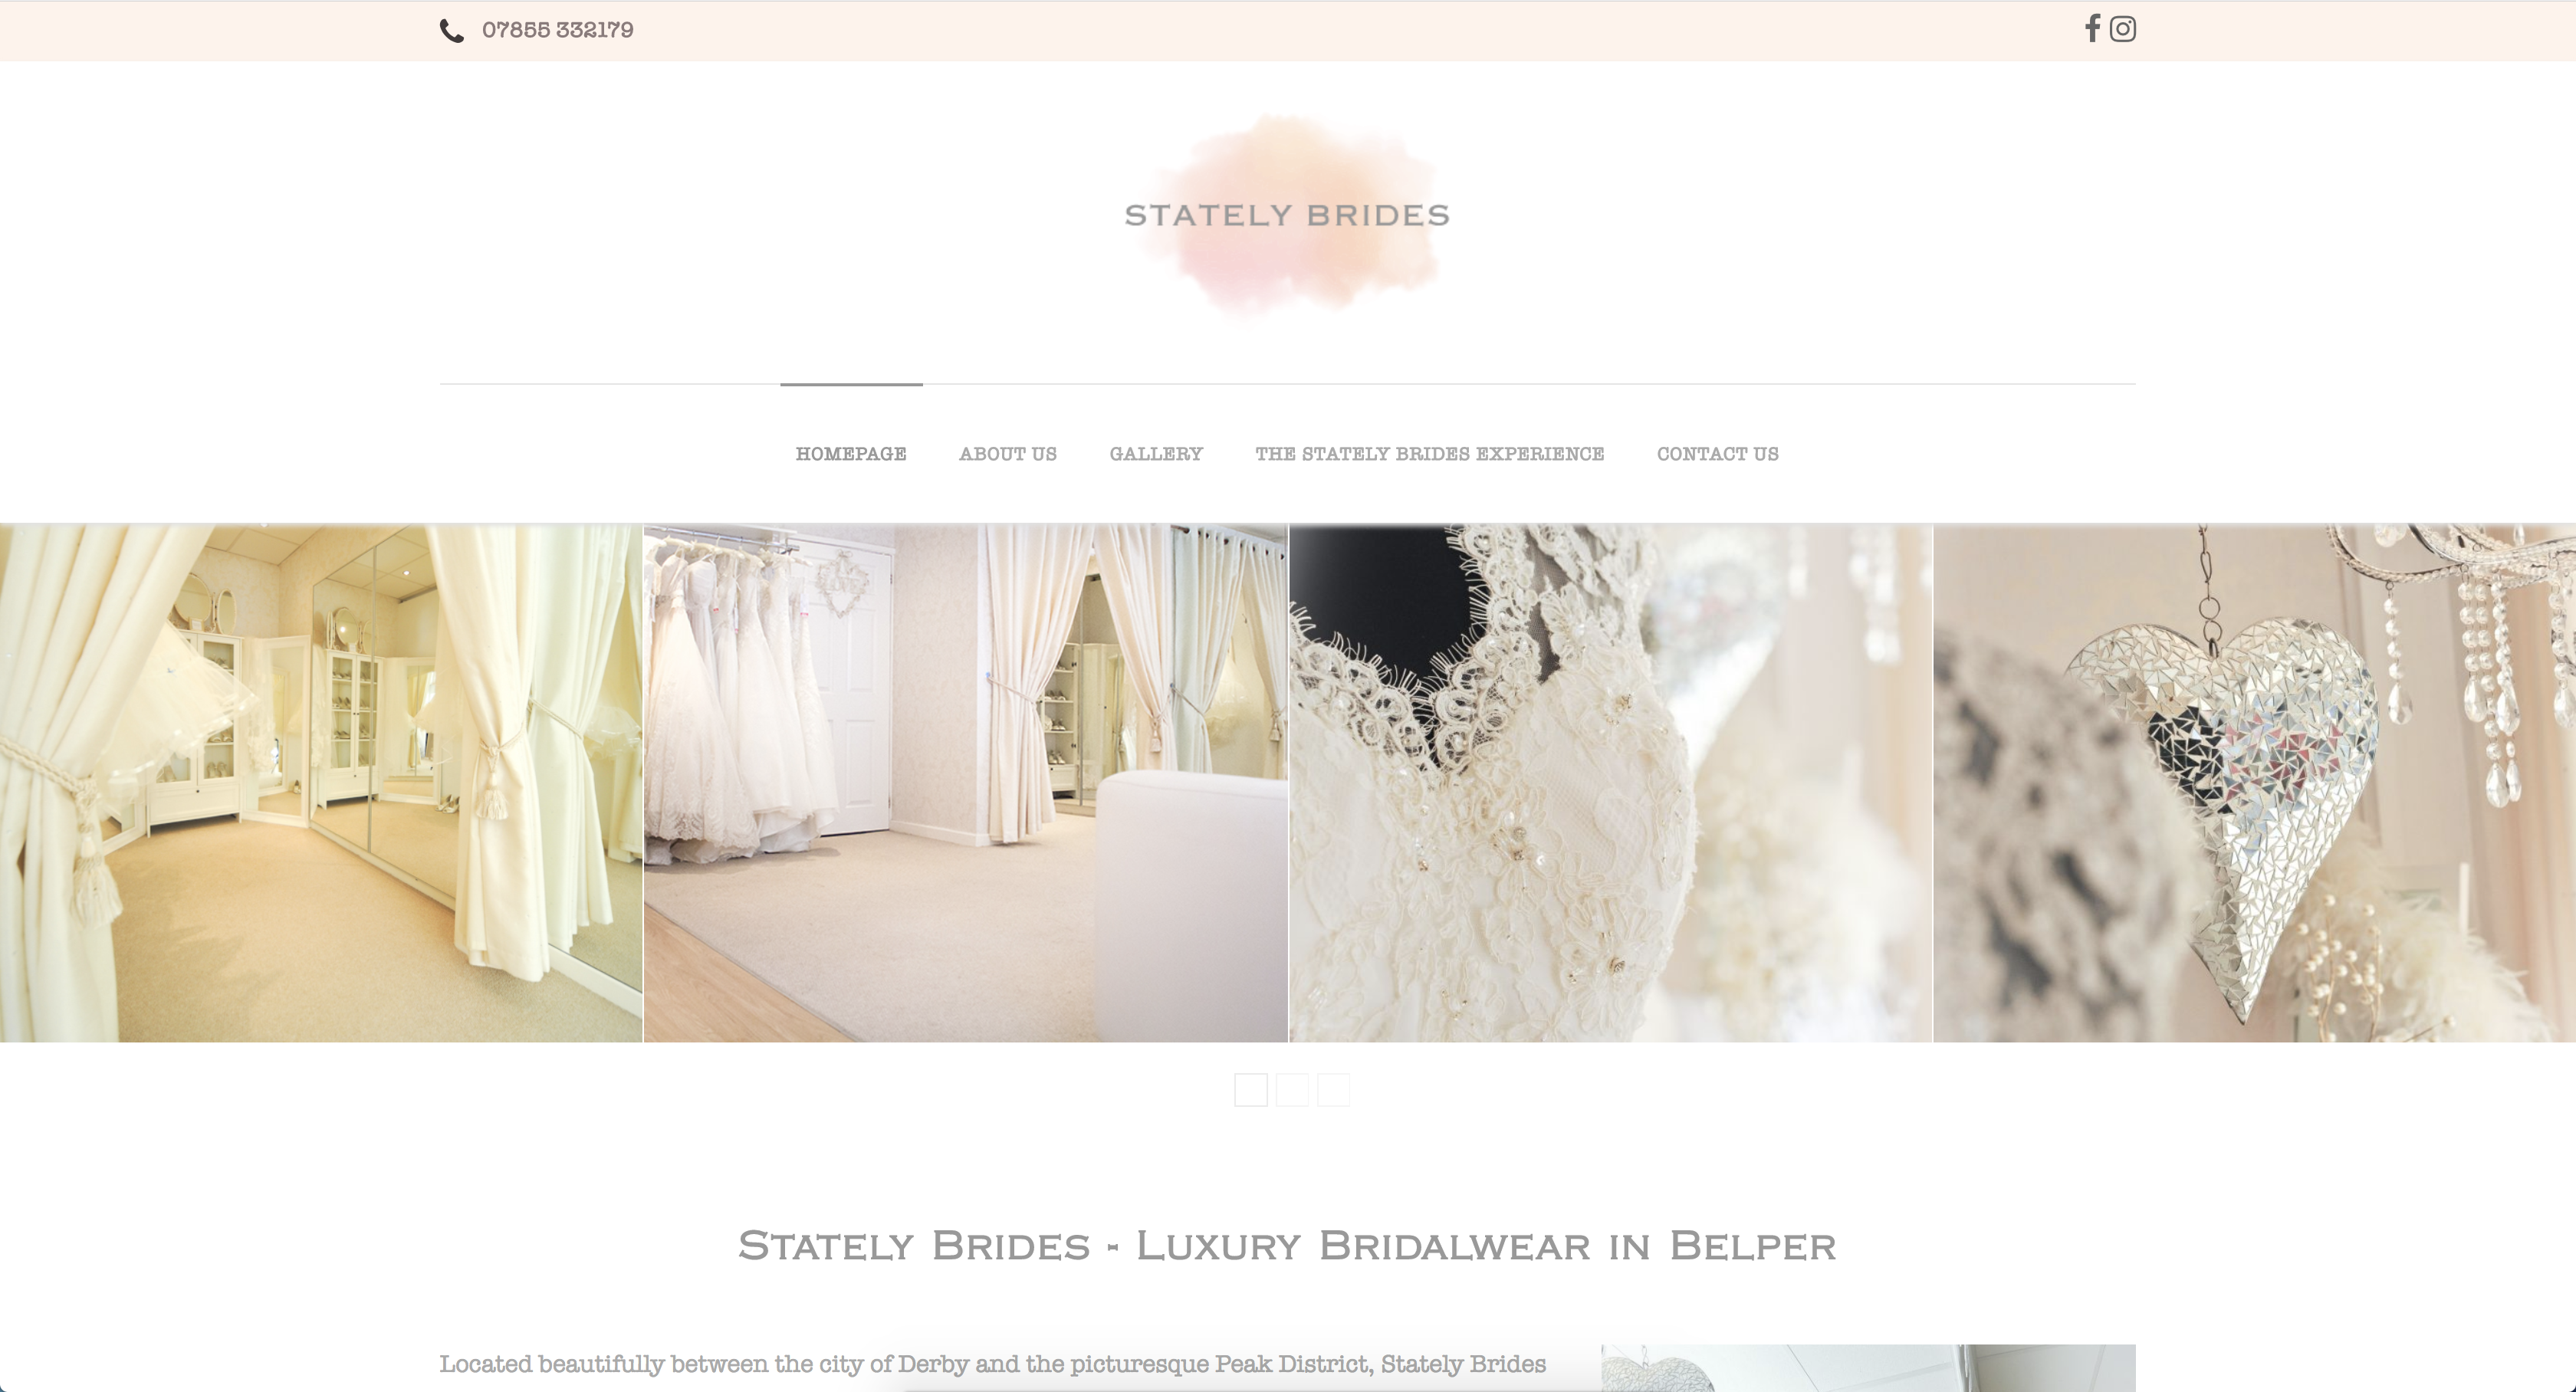 Stately Brides of Belper, Website Homepage